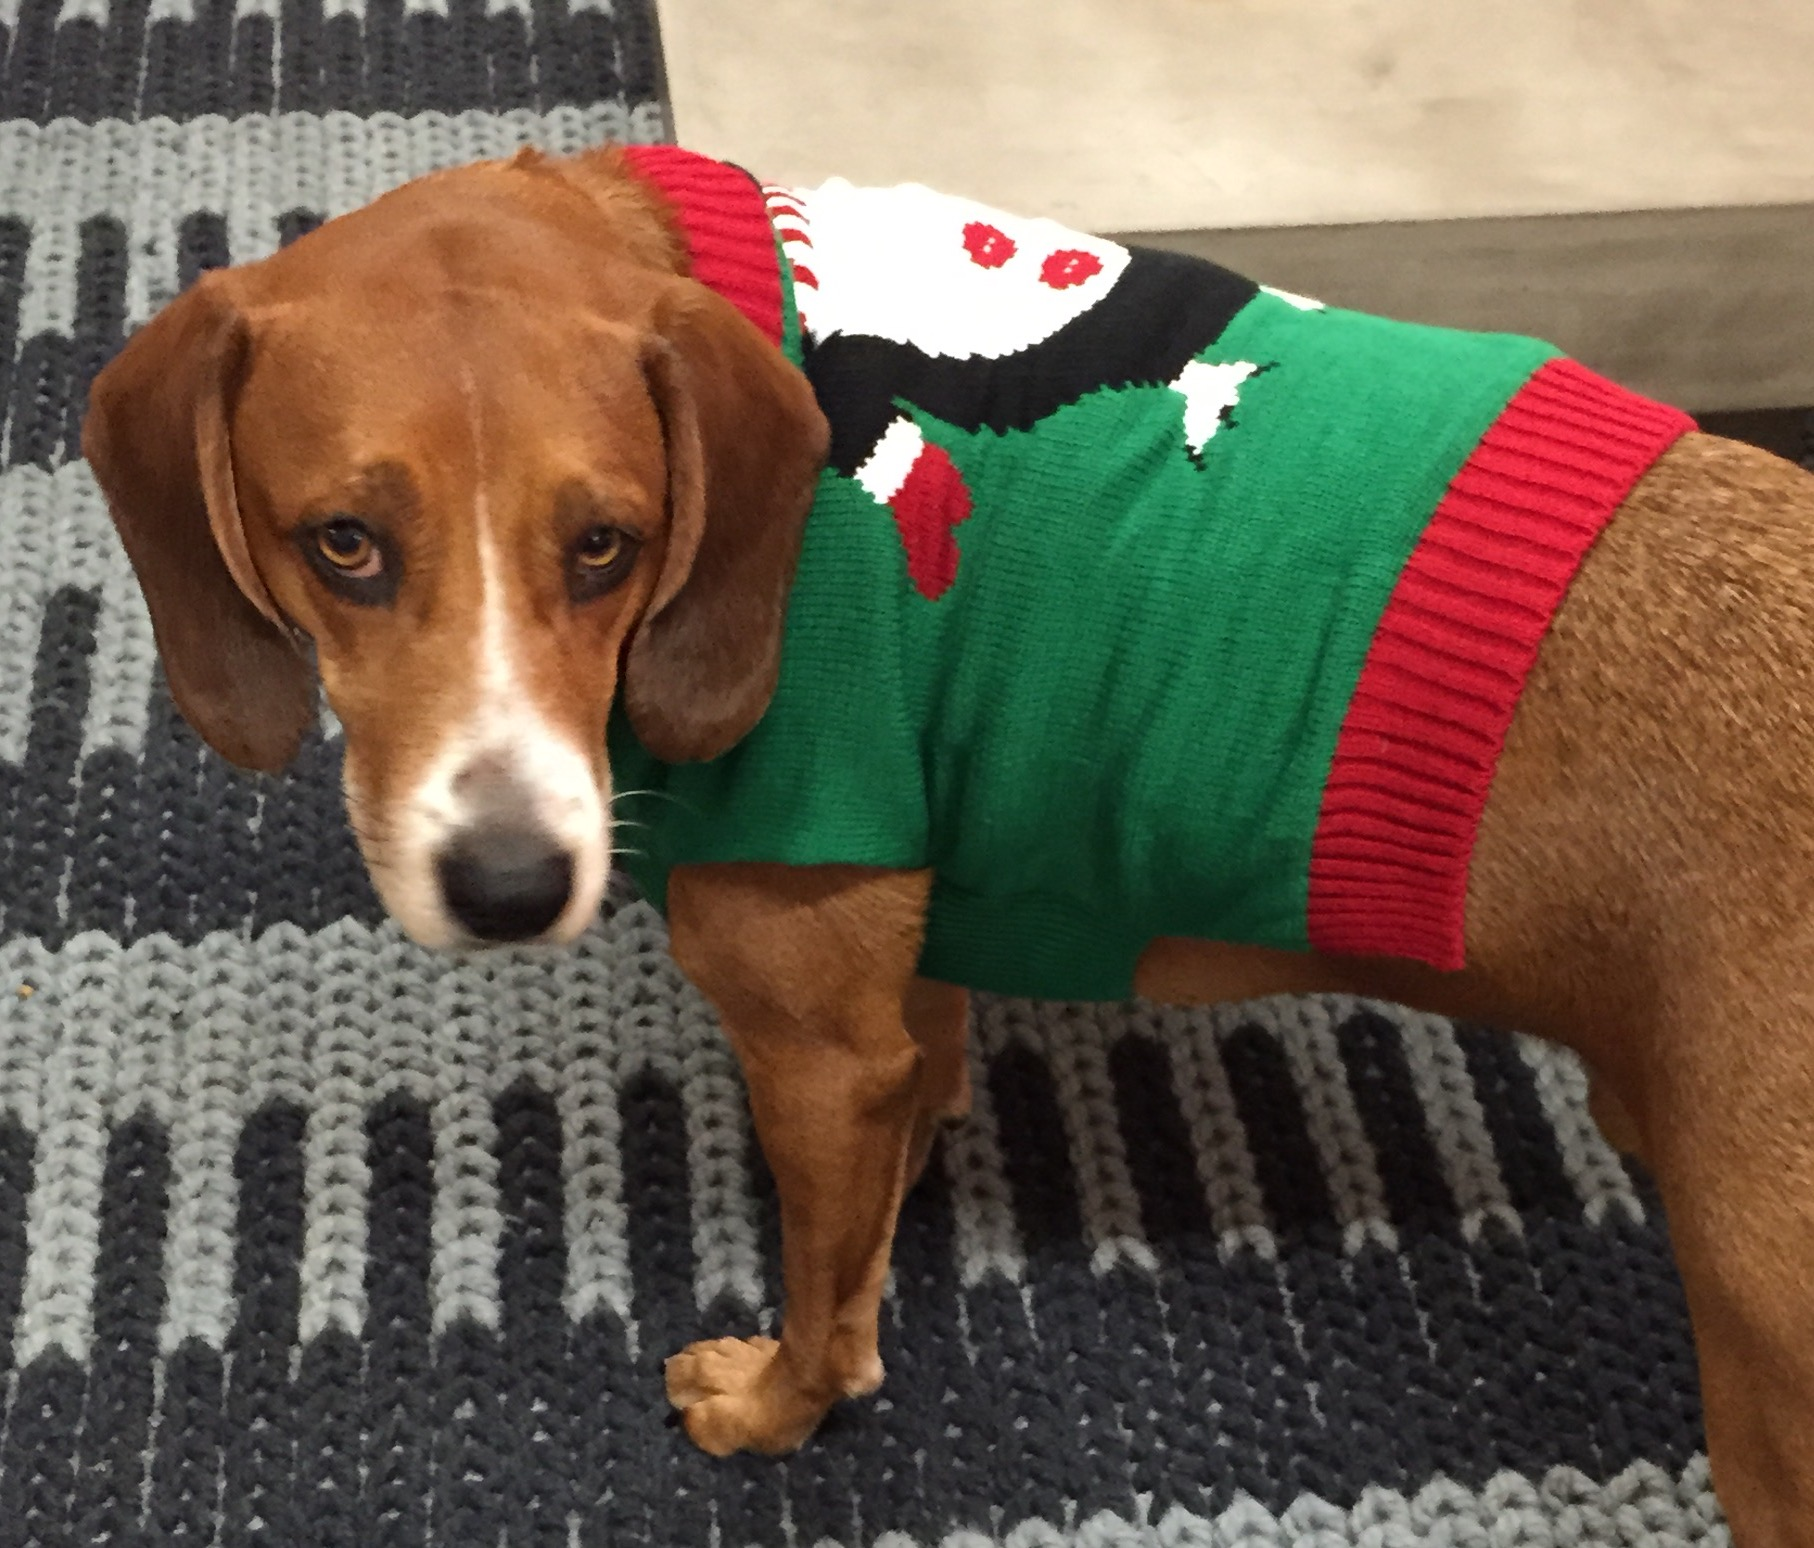 Your Dog, His Sweater, and that Disappointed Look on His Face